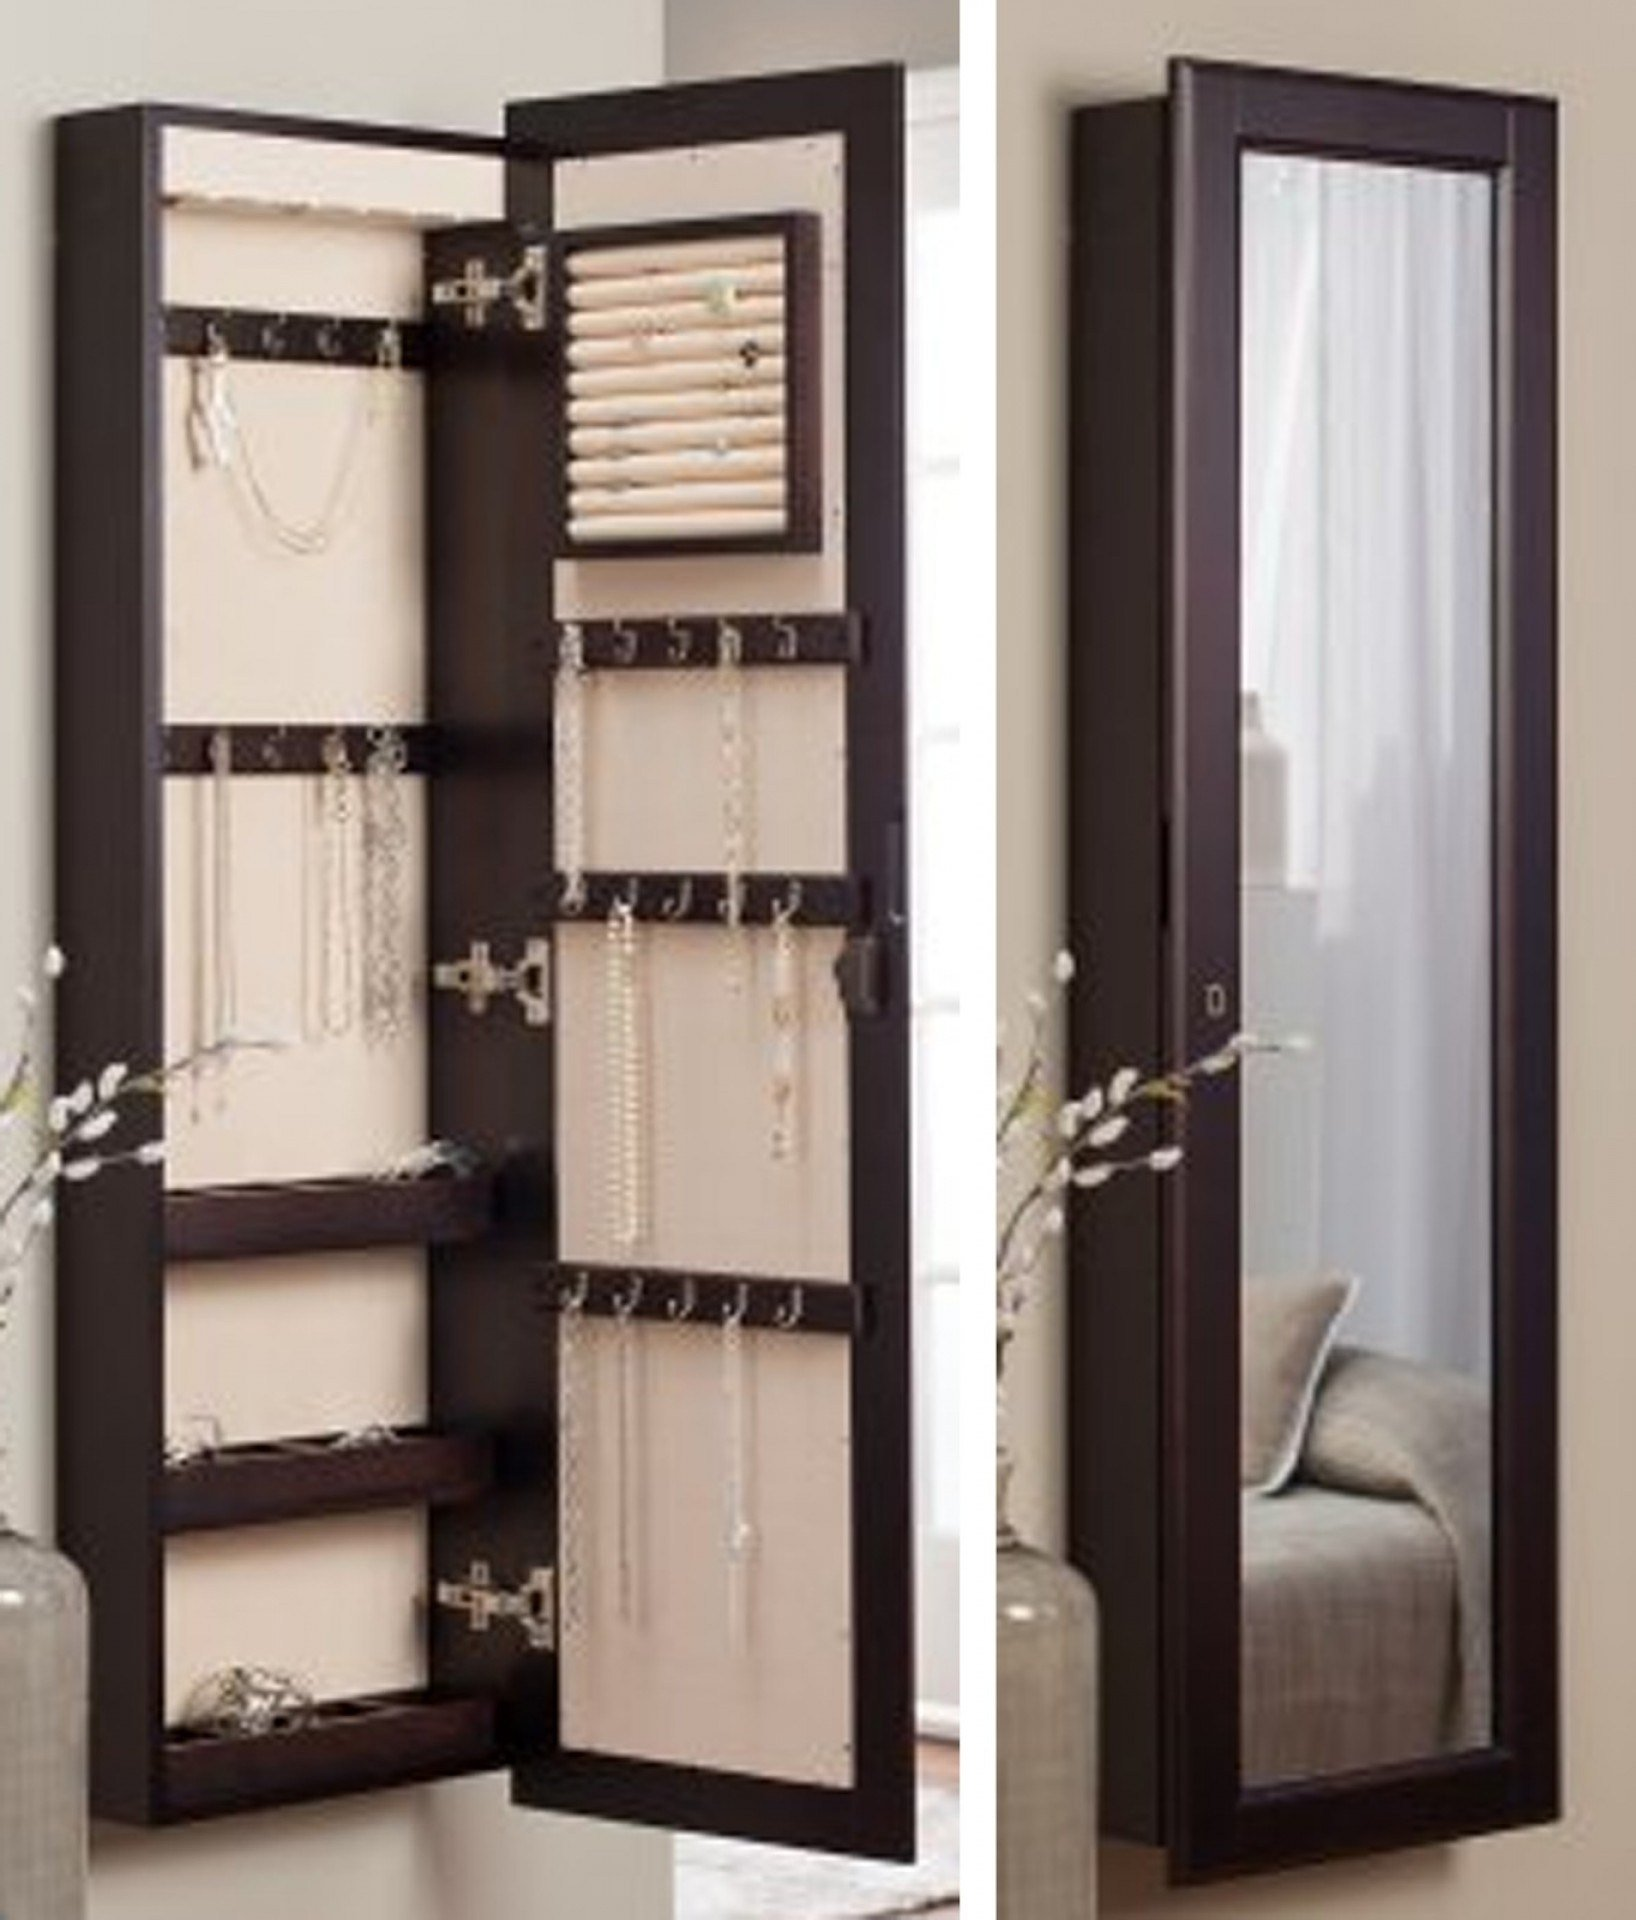 Best Wall Jewelry Storage Ideas Caymancode With Pictures